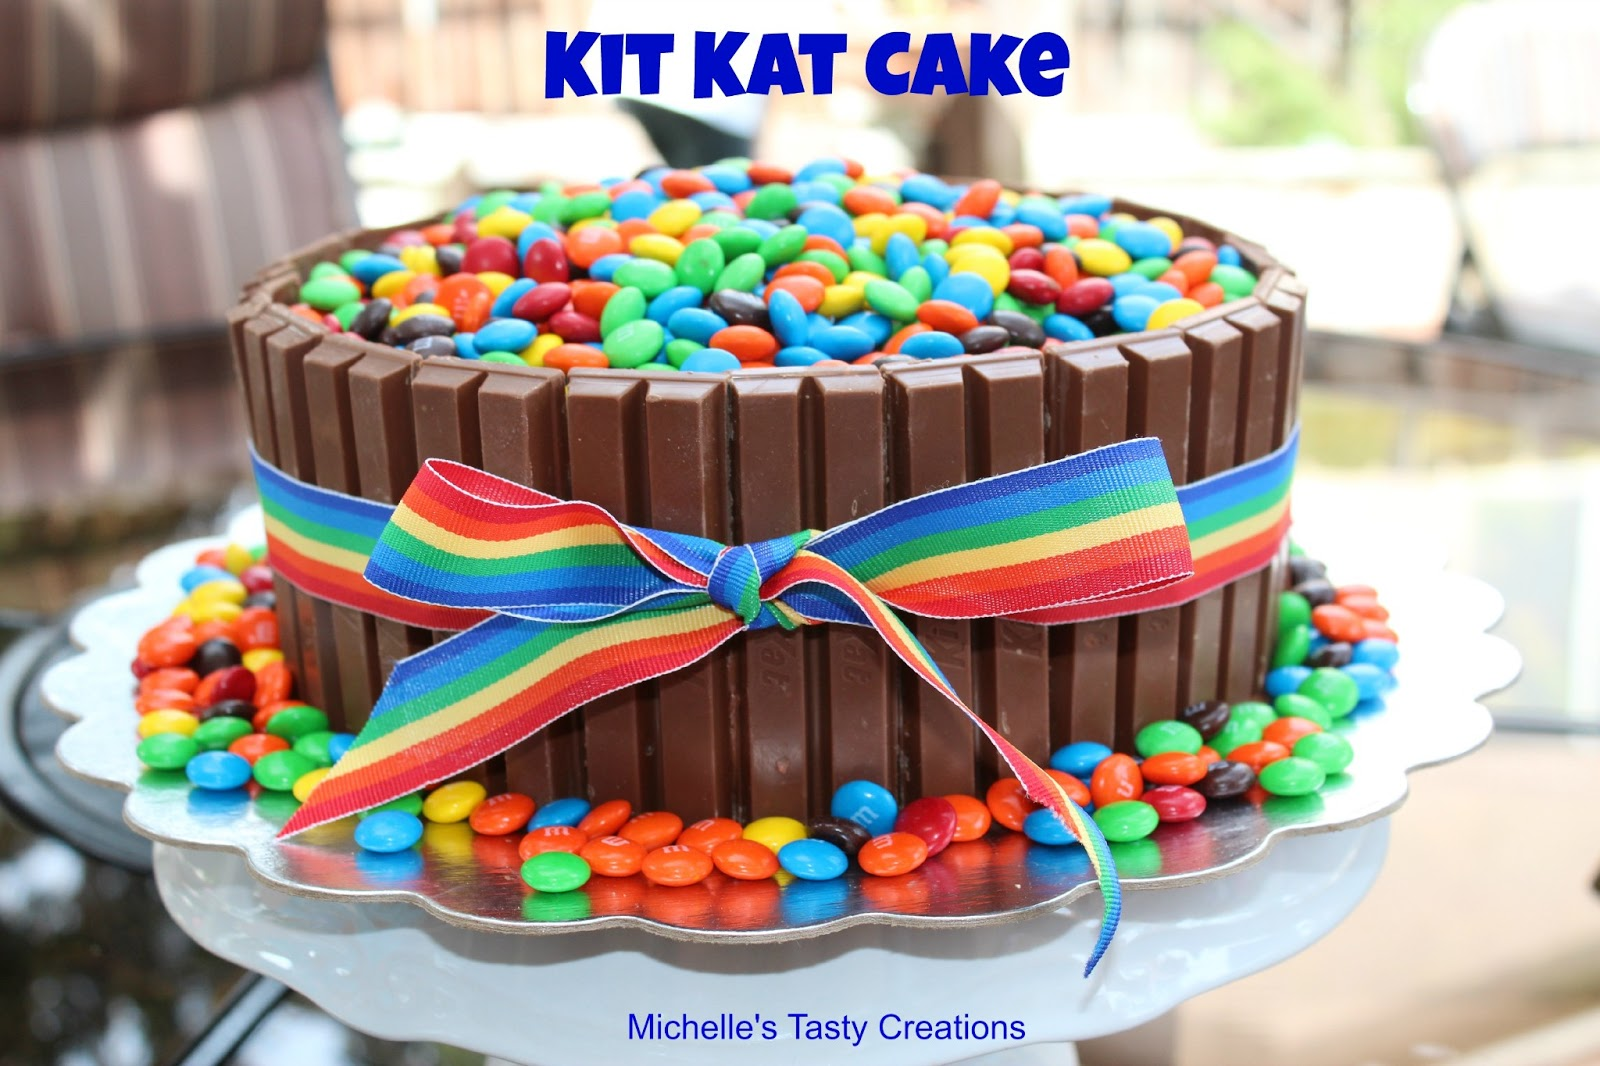 Kit Kat Rainbow Ice Cream Cake